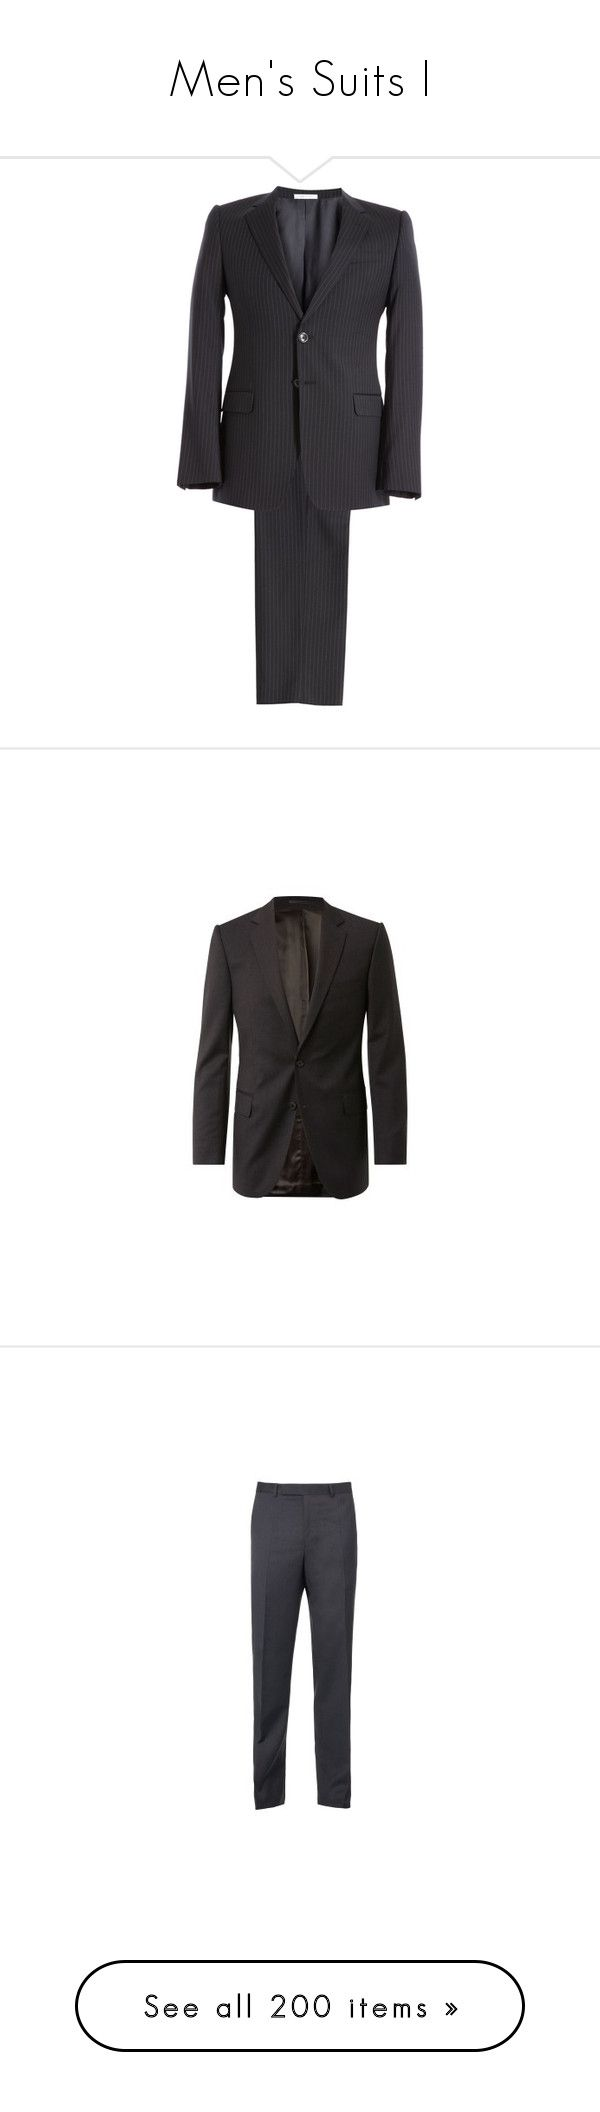 """""""Men's Suits I"""" by the-walking-doctor ❤ liked on Polyvore featuring men's fashion, men's clothing, men's suits, mens navy pinstripe suit, merino wool mens clothing, mens navy suit, mens pinstripe suit, men's 2 piece suits, outerwear and jackets"""